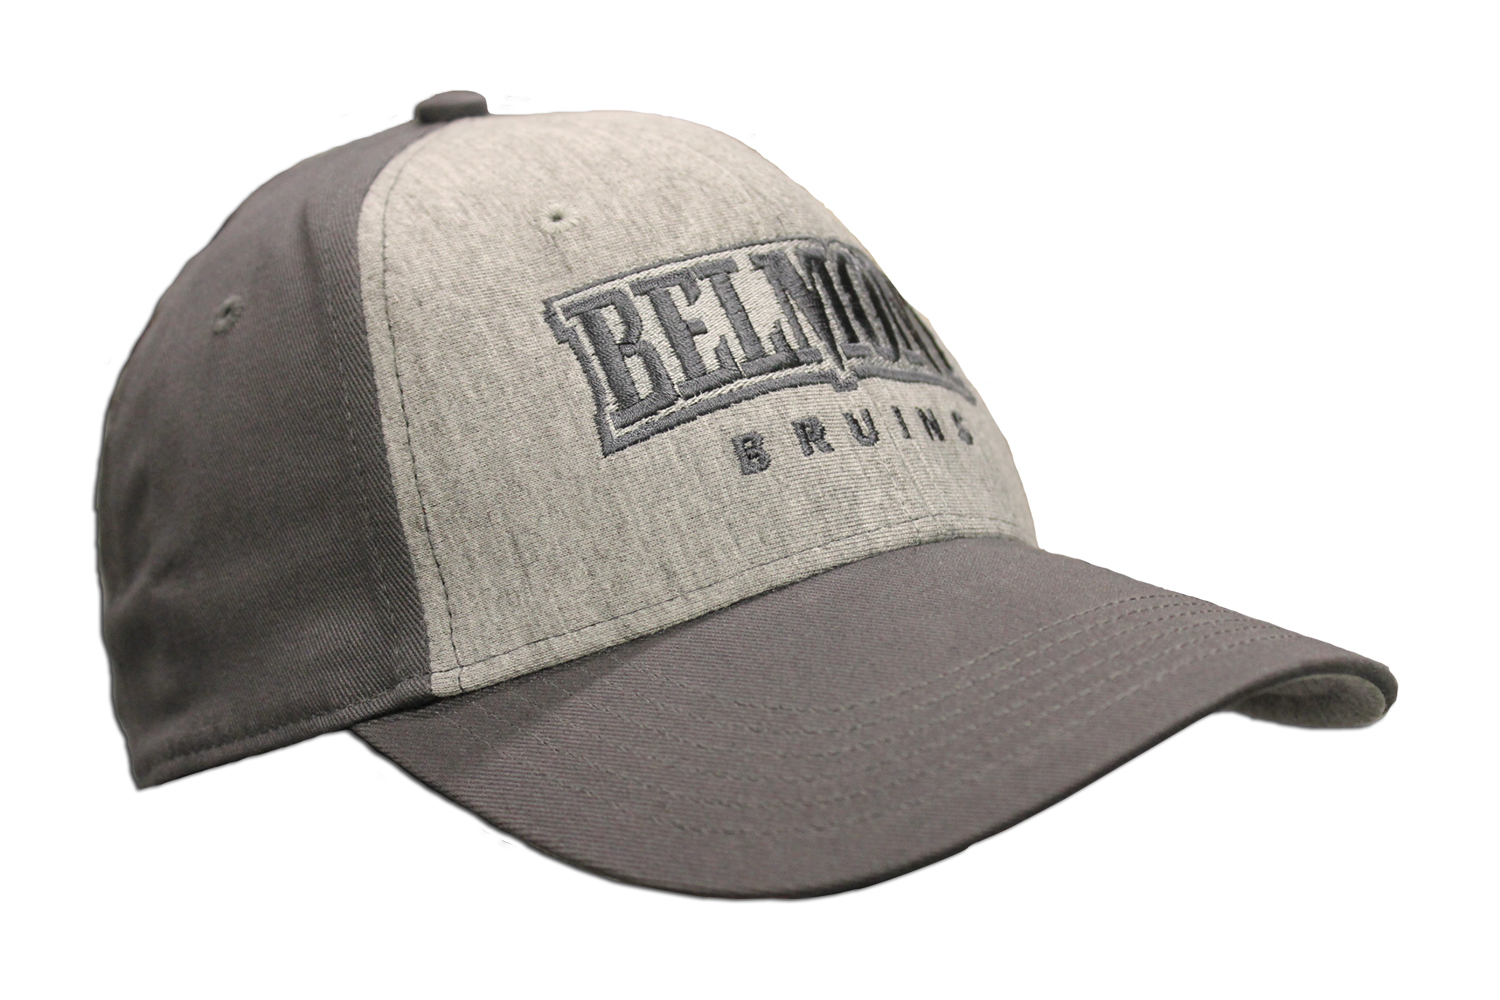 Image For BRUINS JERSEY CAP (B2259)